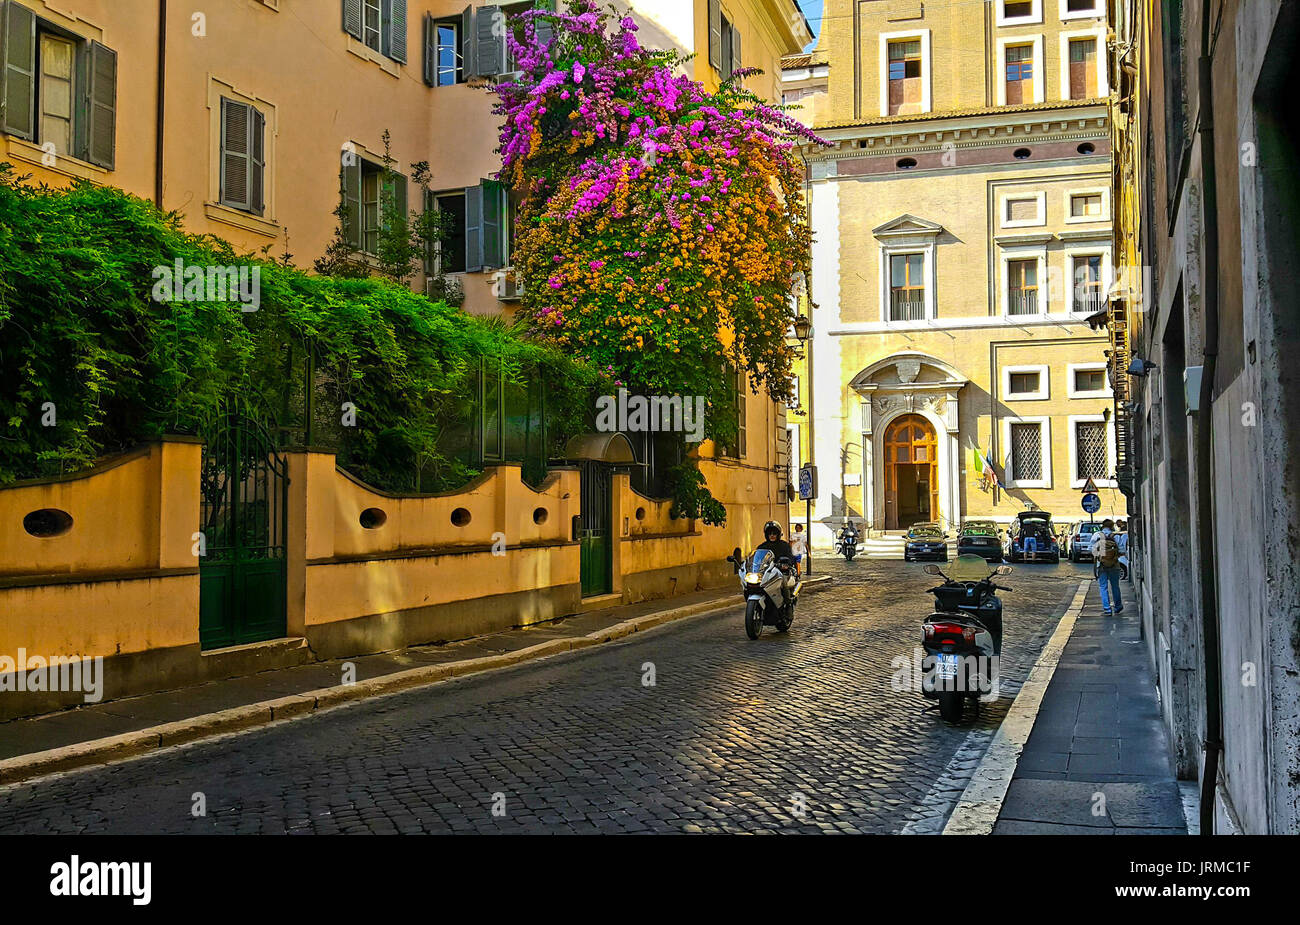 Back street in Rome with a colorful bougainvillea plant with pink and orange flowers on the side of a building with a motorcycle and a solo traveler - Stock Image